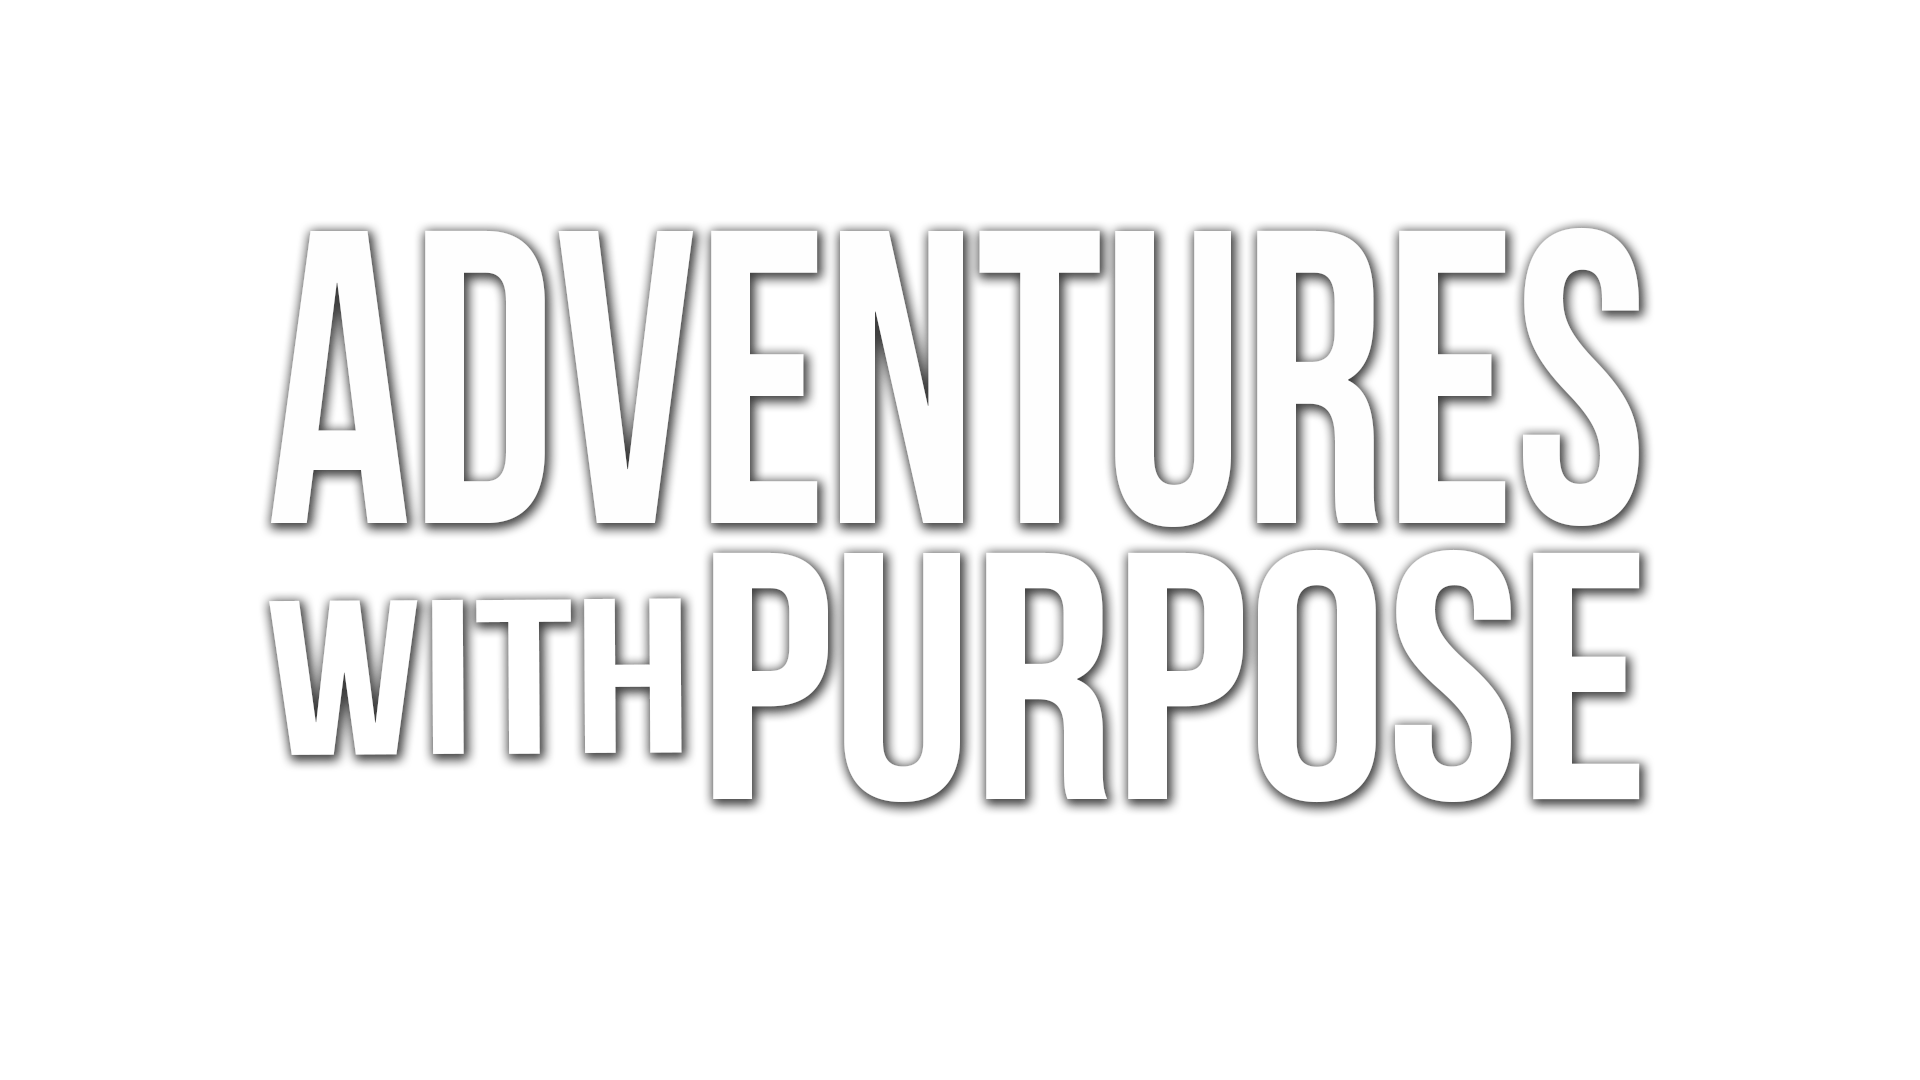 AdventuresWithPurpose